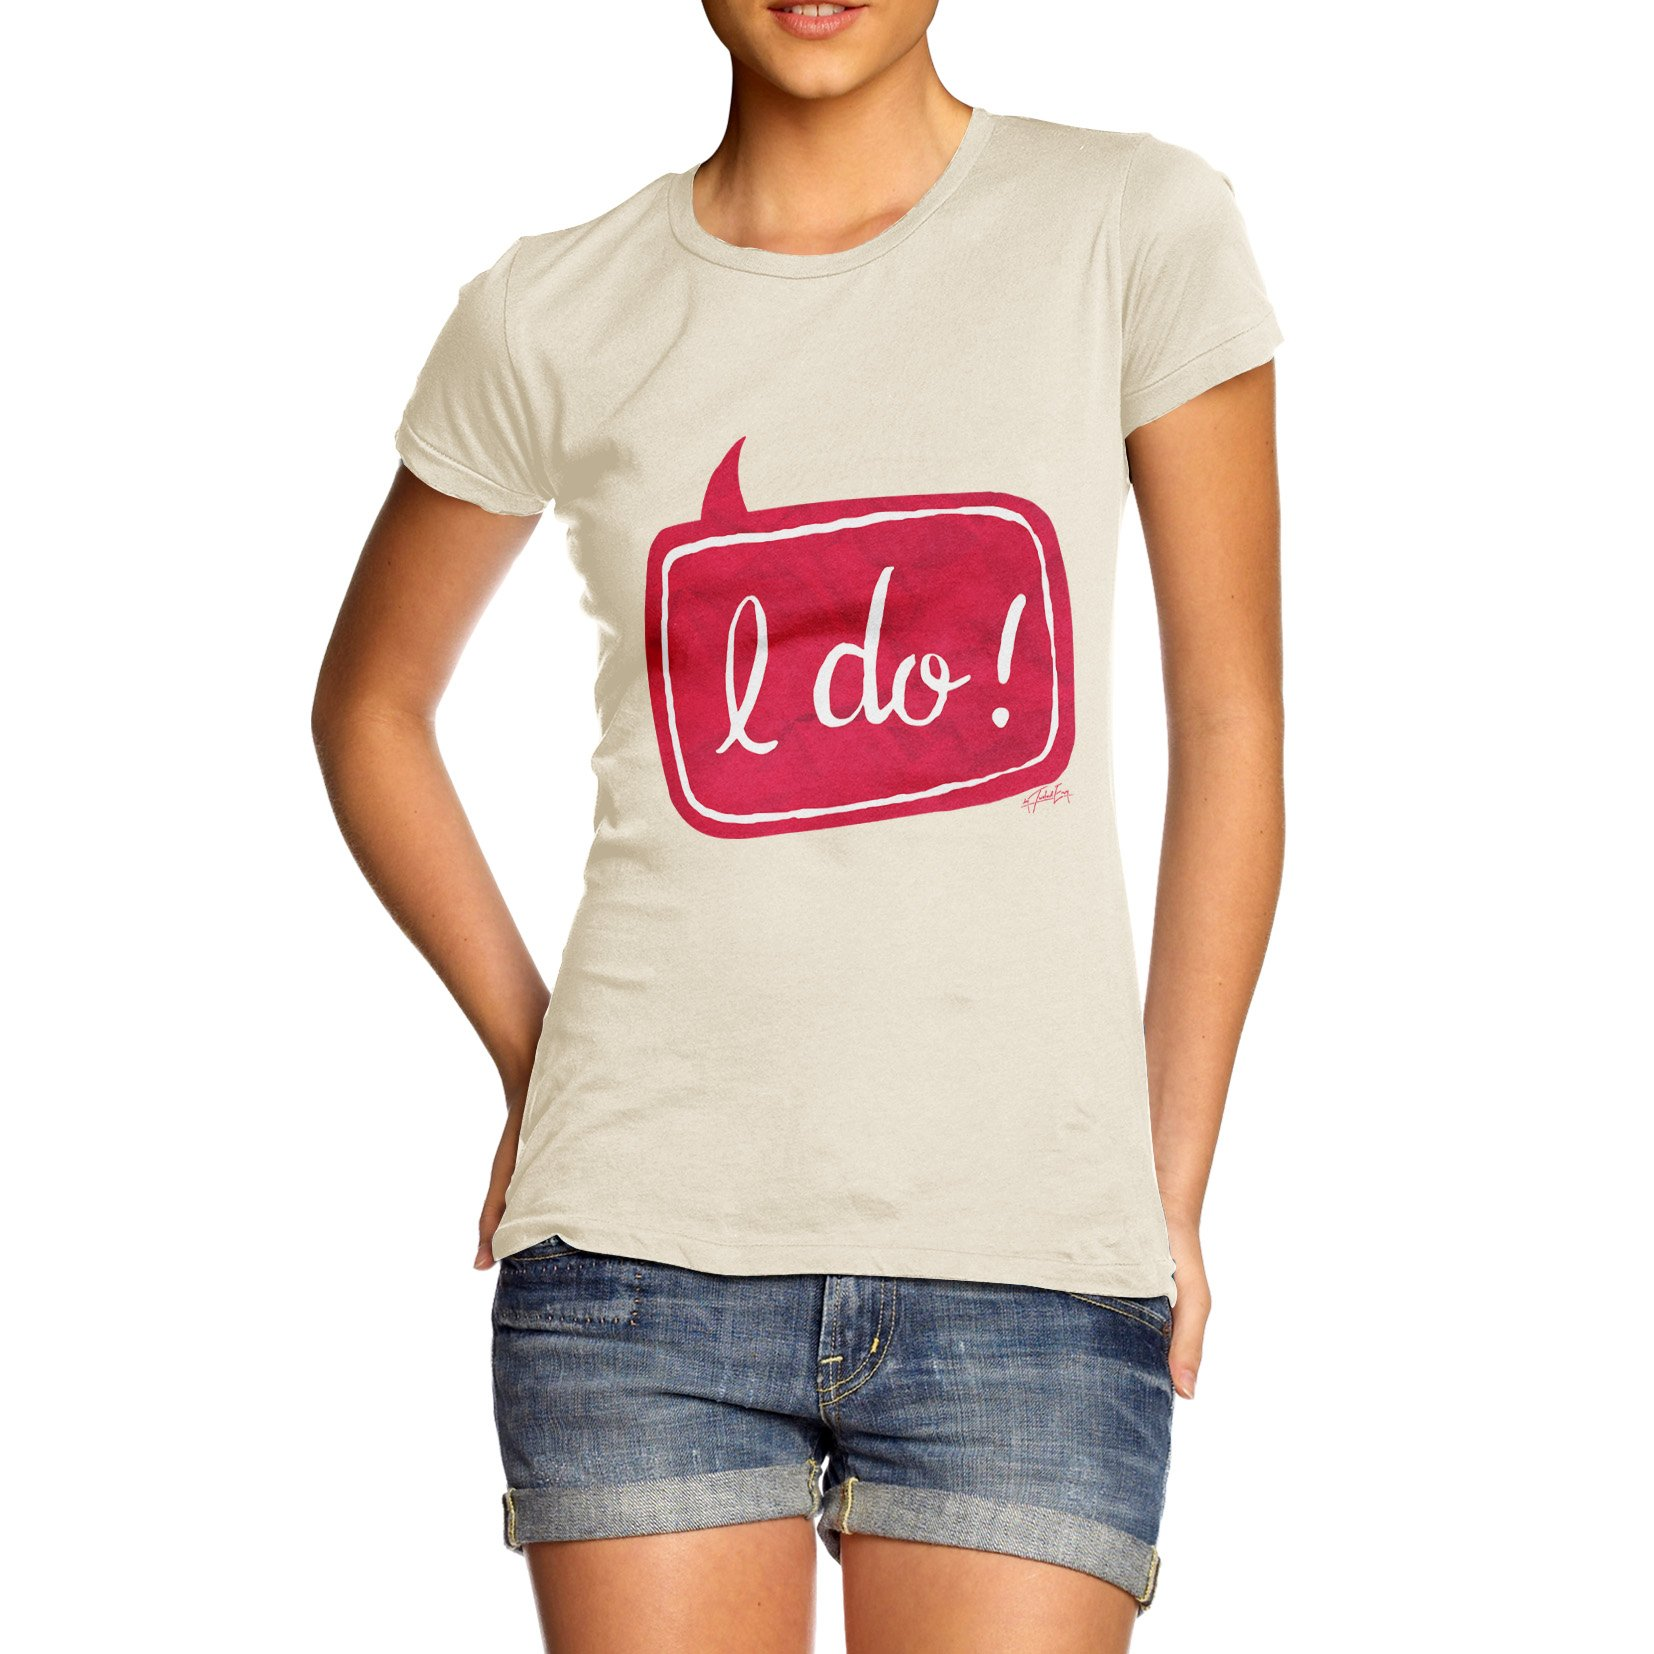 Women's I Do! Wedding 100% Cotton T-Shirt, Crew Neck, Comfortable and Soft Classic Tee with Unique Design X-Large Natural